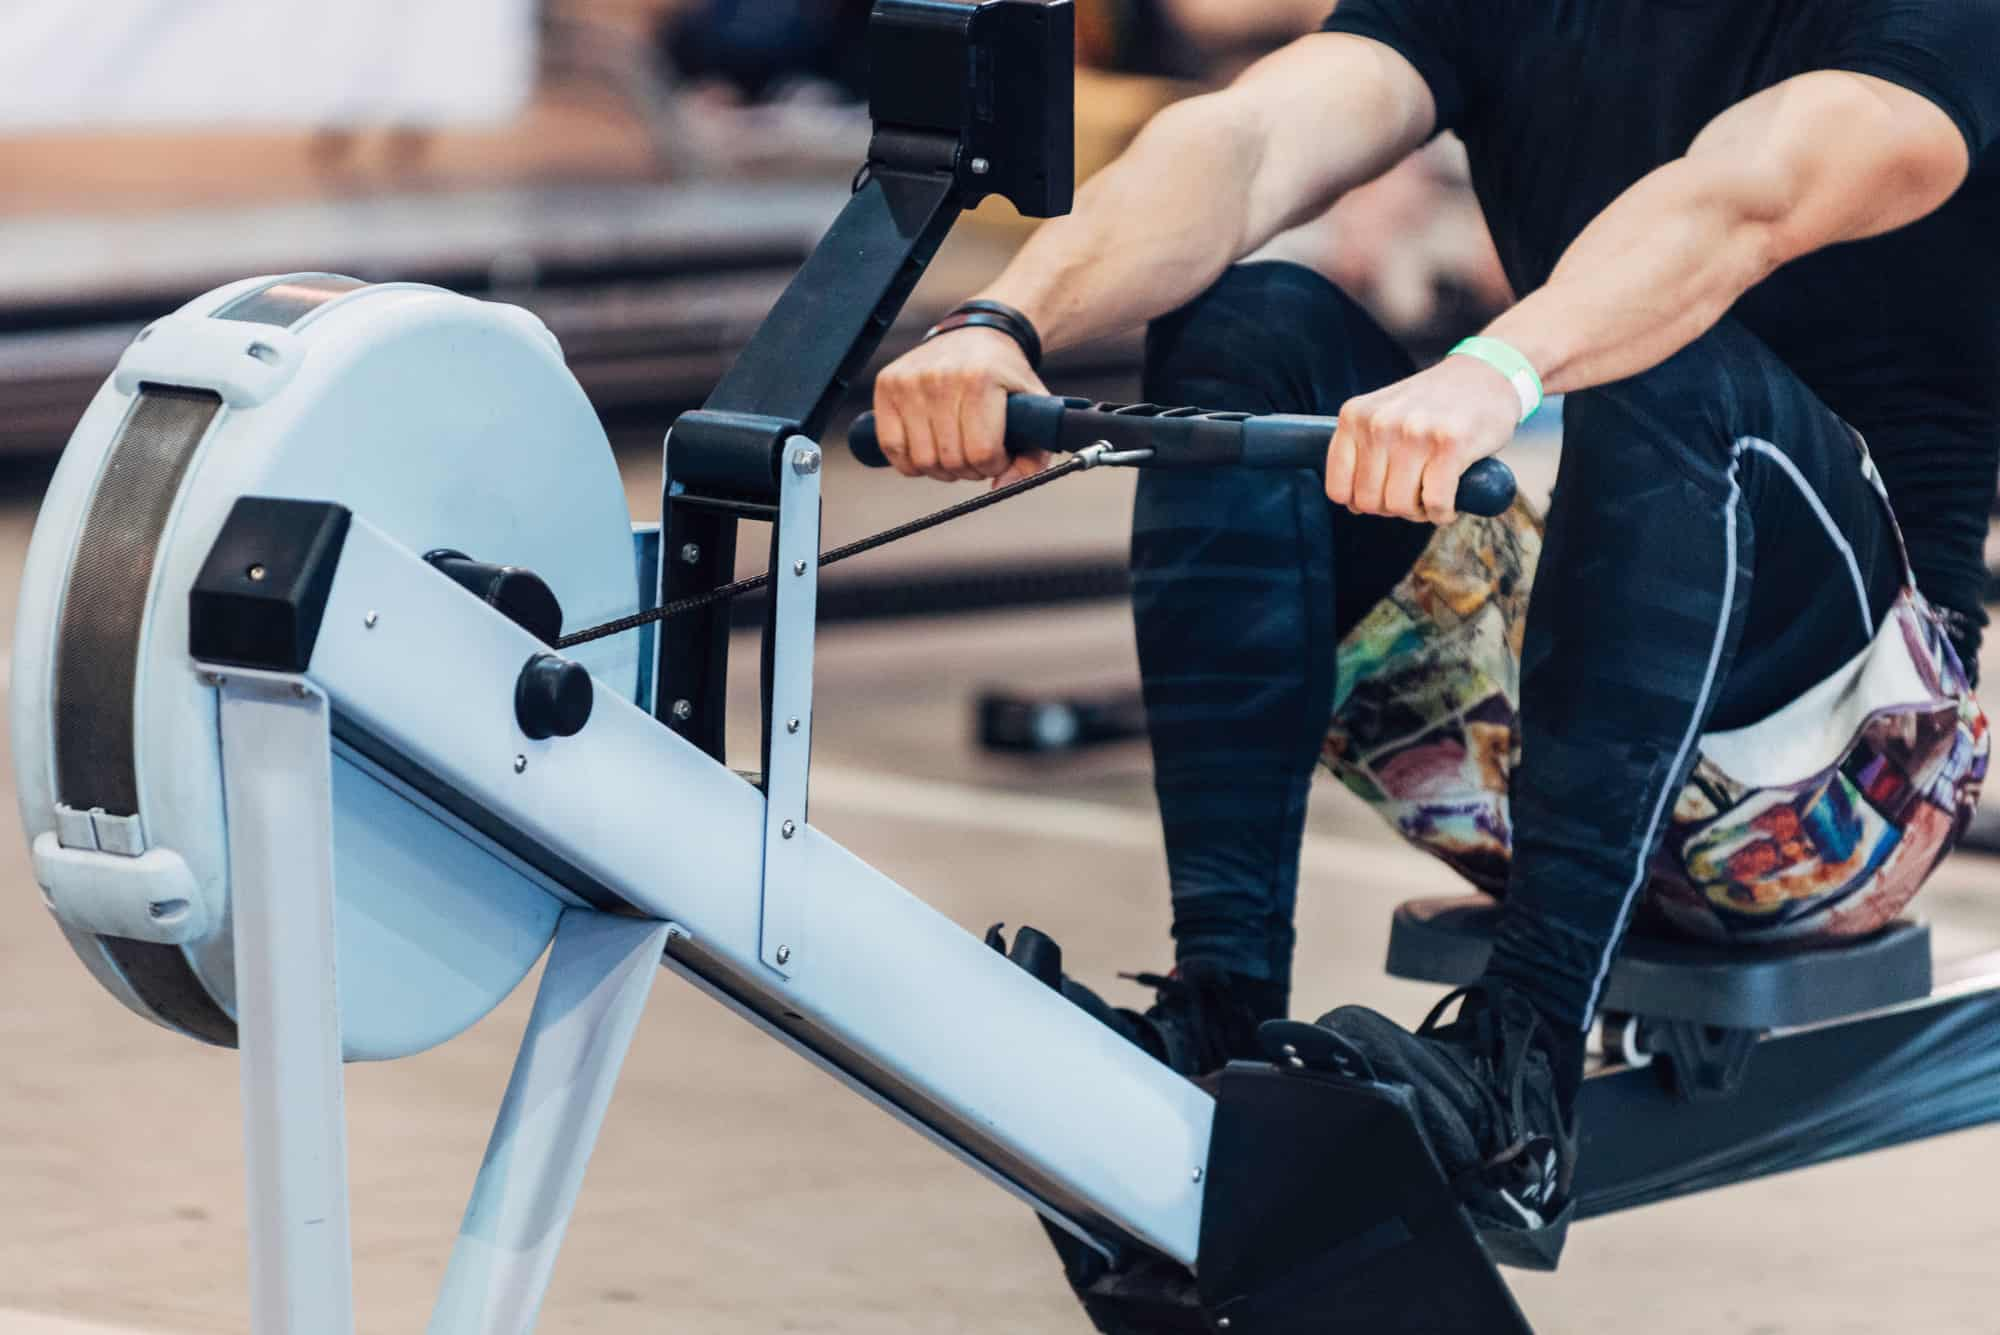 which is a better workout walking or rowing machine